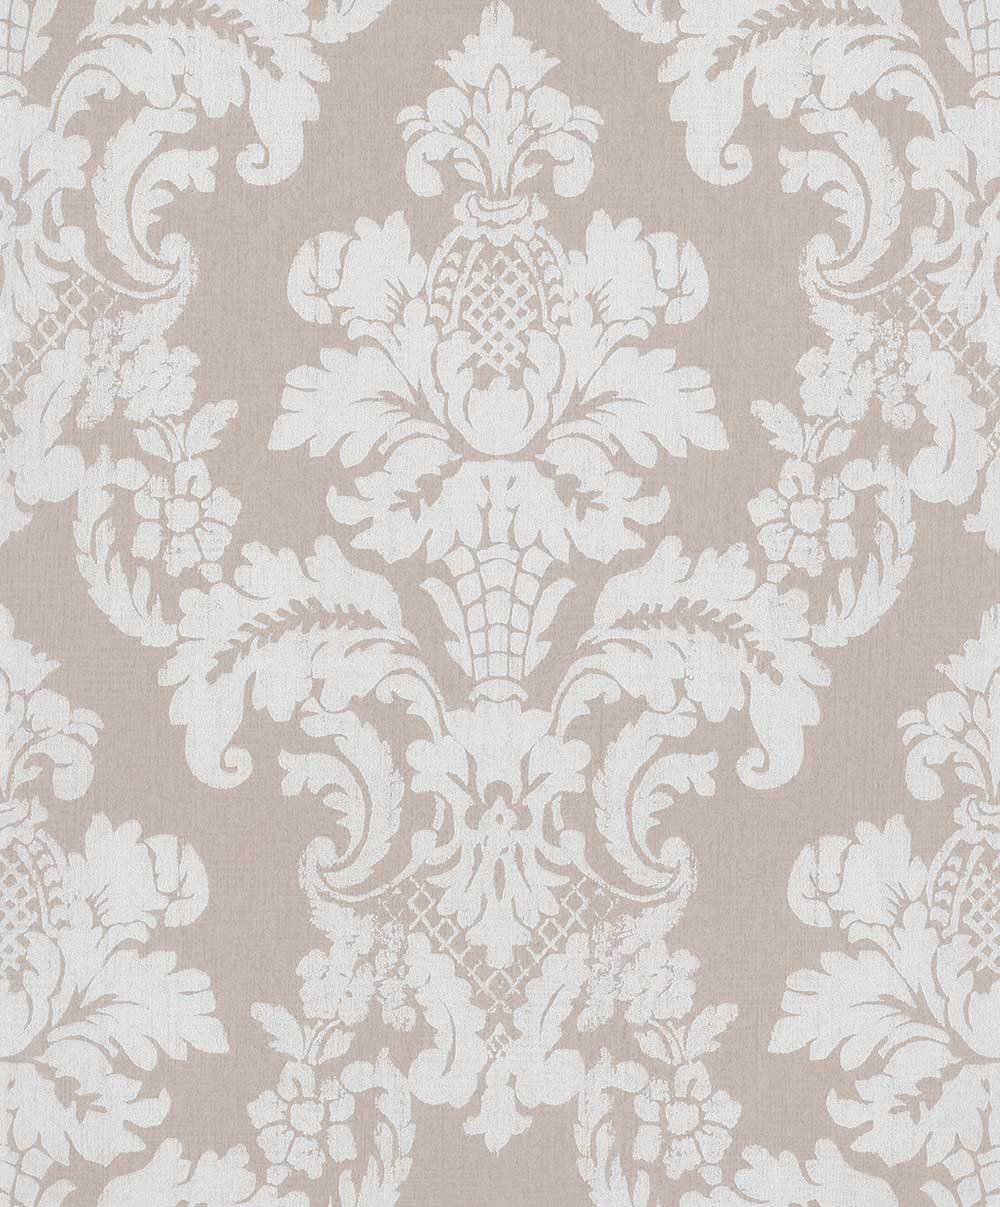 Albany Distressed Damask Beige Wallpaper - Product code: 200254